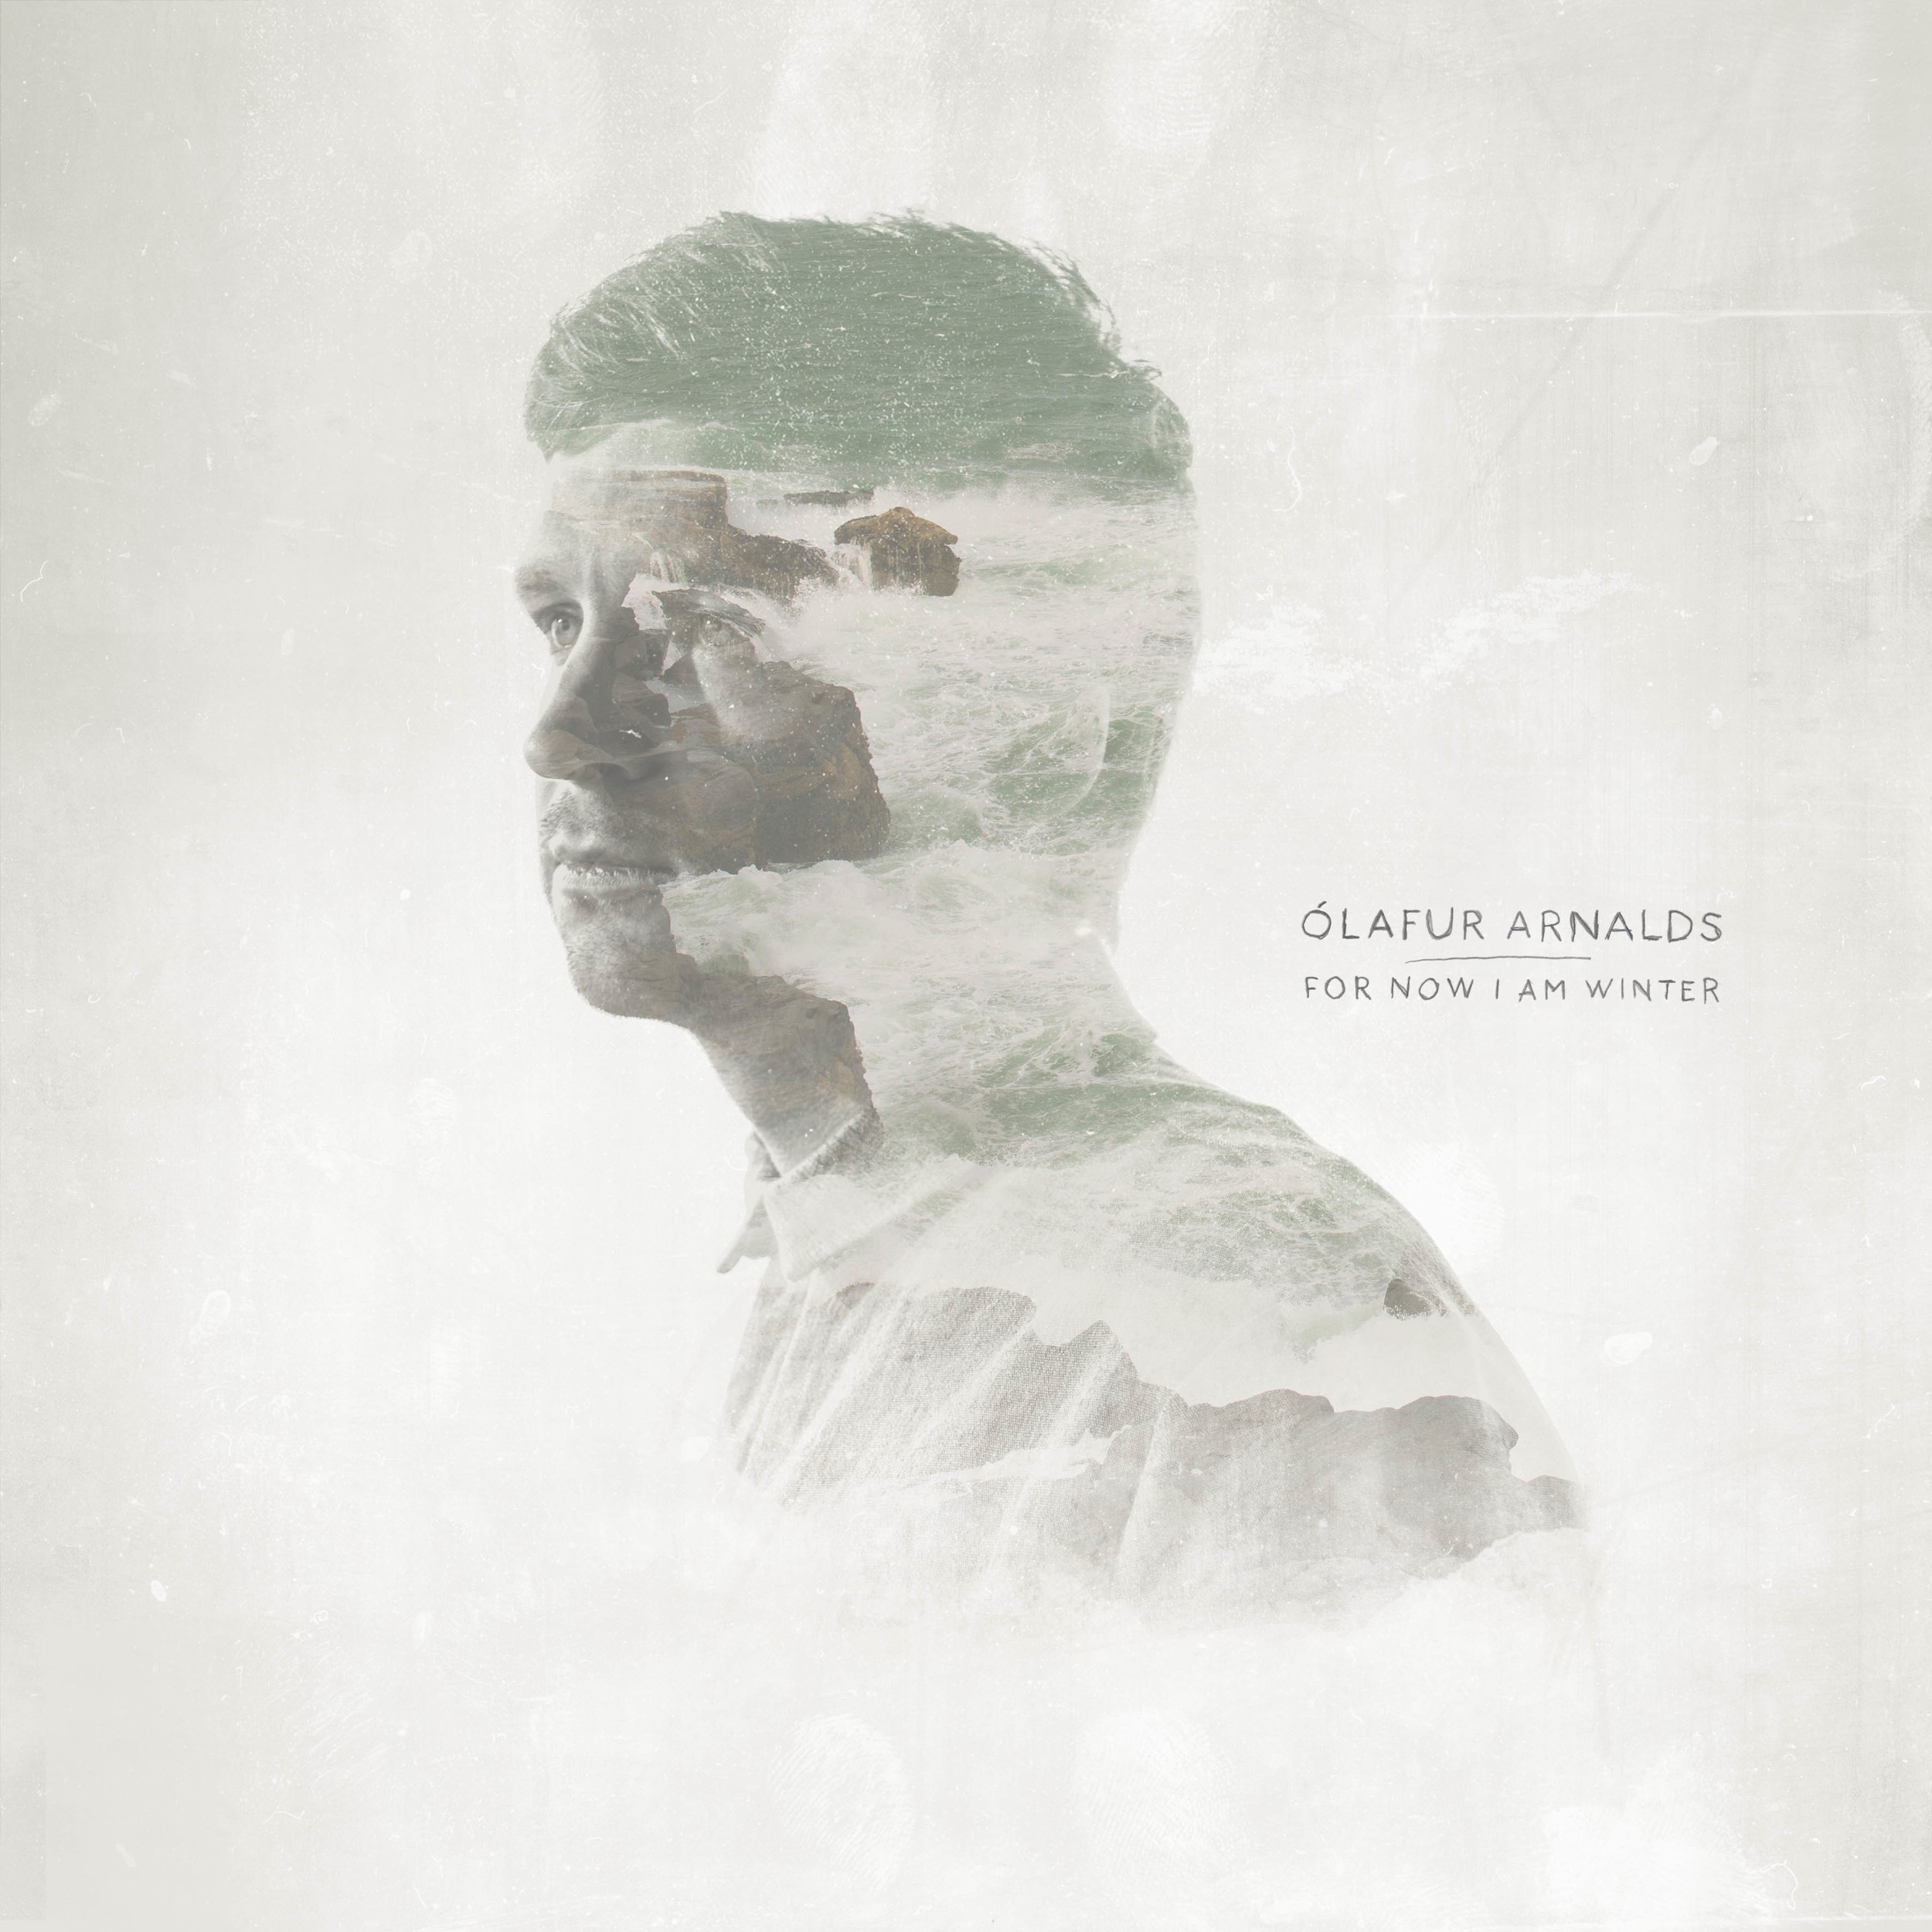 For Now I Am Winter - Ólafur Arnalds